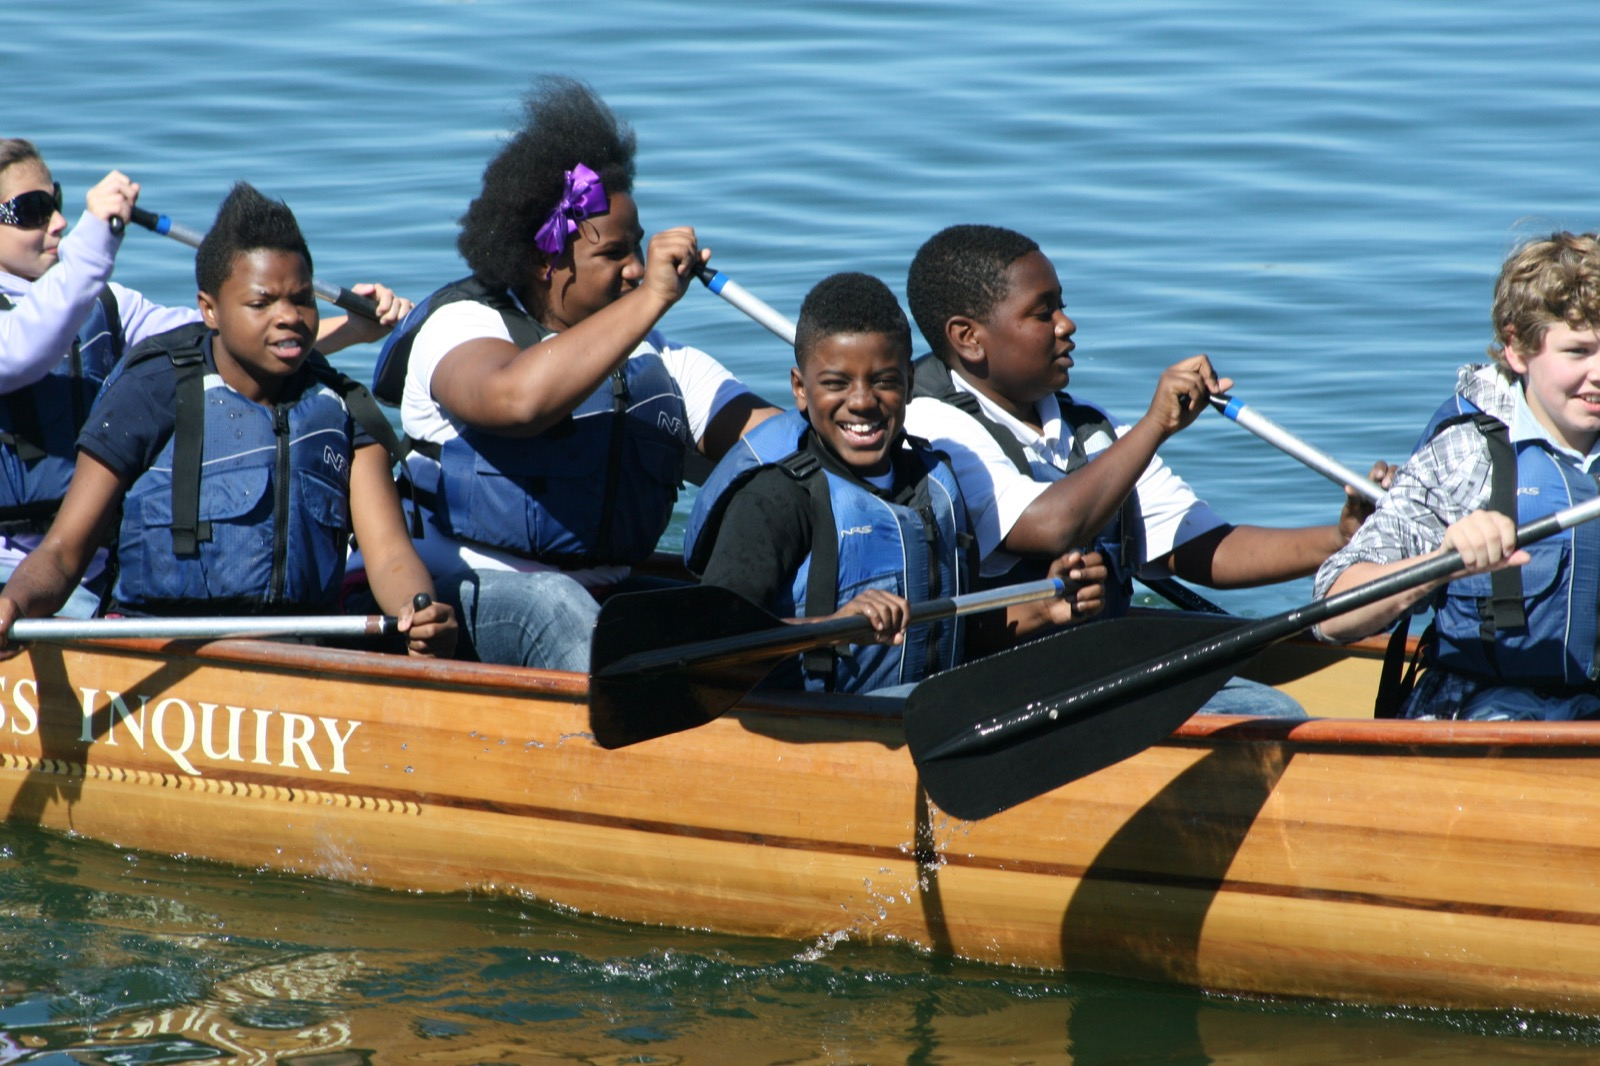 an action shot of 6 youth helping paddle the voyageur canoe on Trail Creek Lake